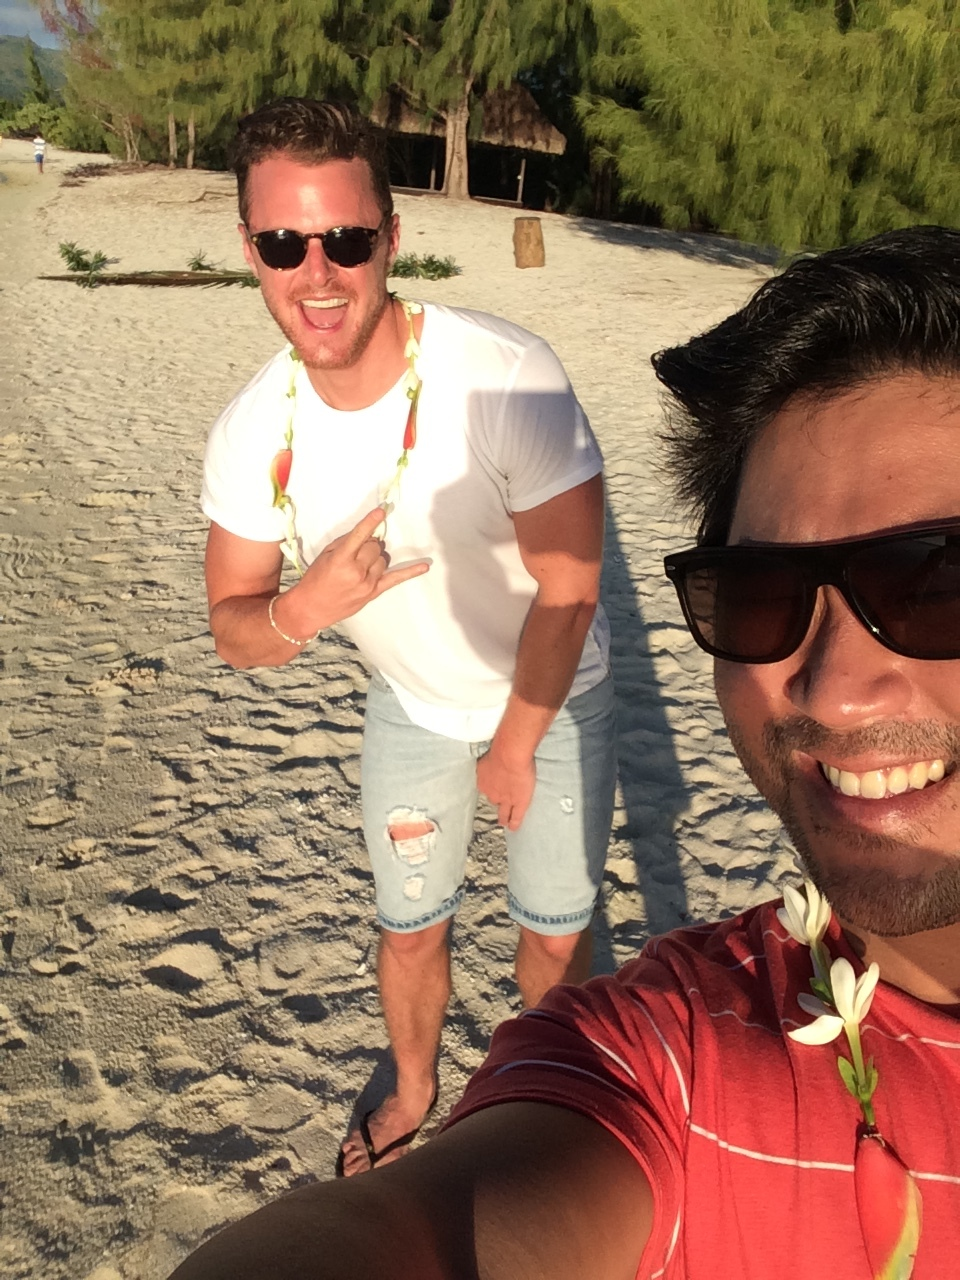 Selfie with my friend Jason in Tahiti